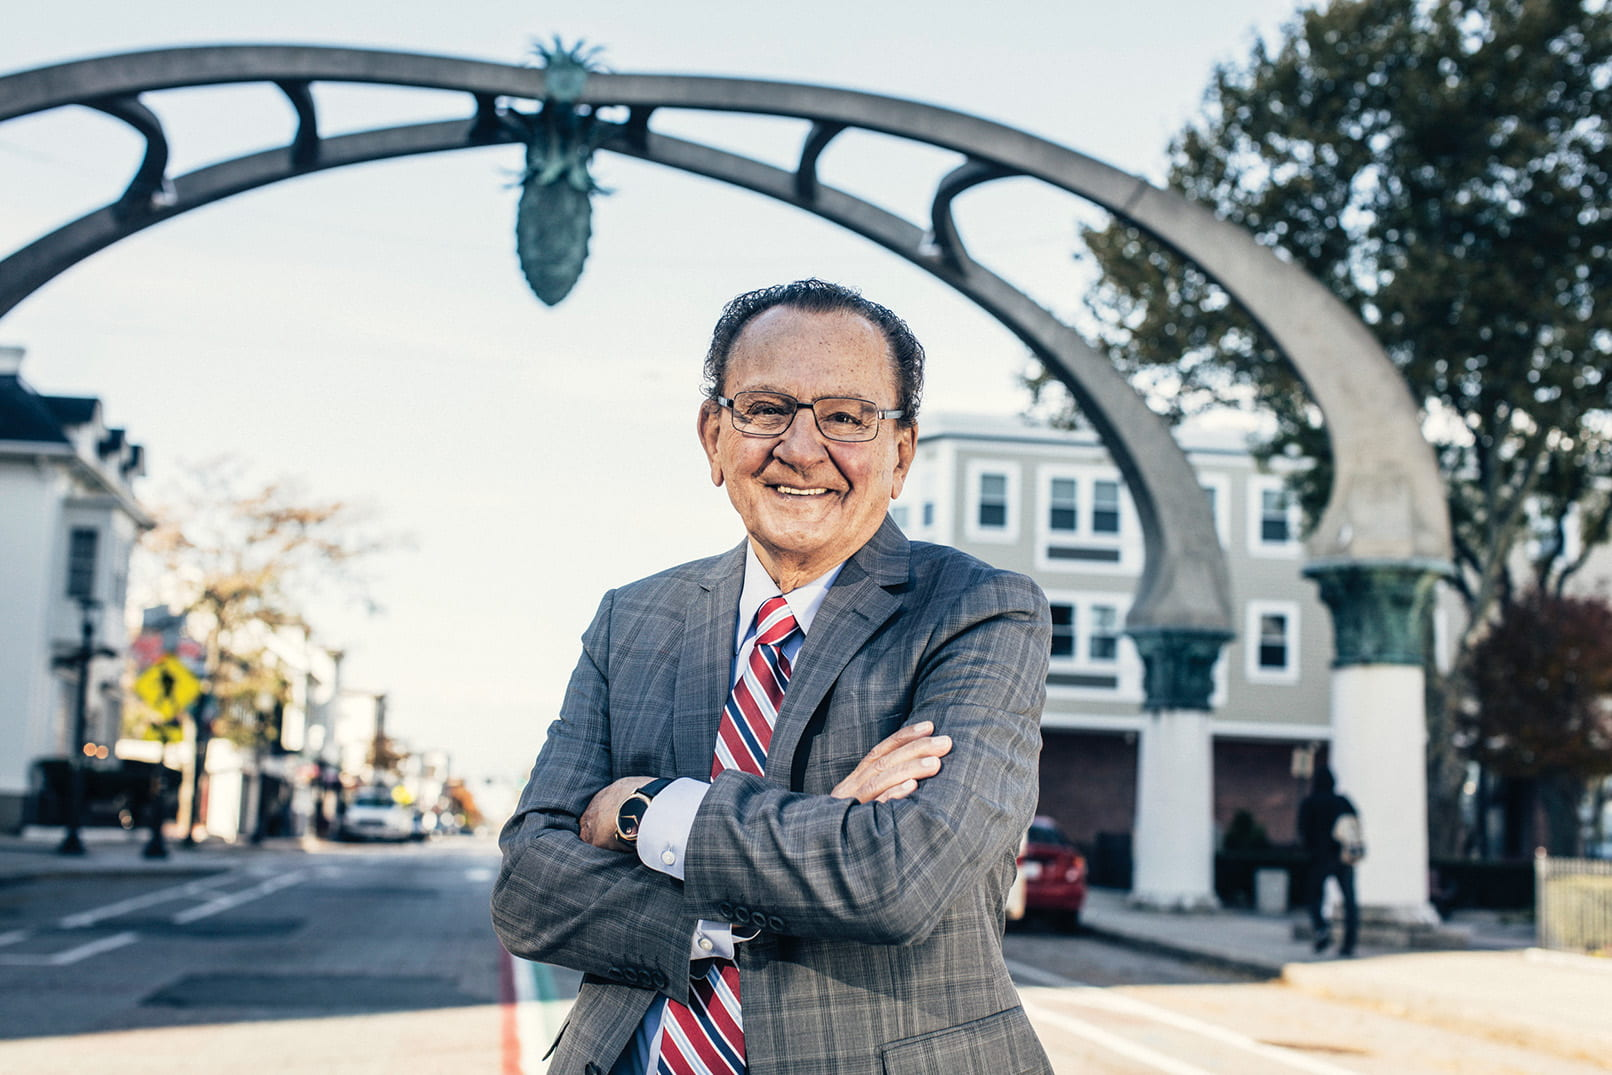 Providence Municipal Court Judge Frank Caprio '58 & '08Hon. moves millions of fans with compassionate jurisprudence and sharp wit on televison's Caught in Providence.